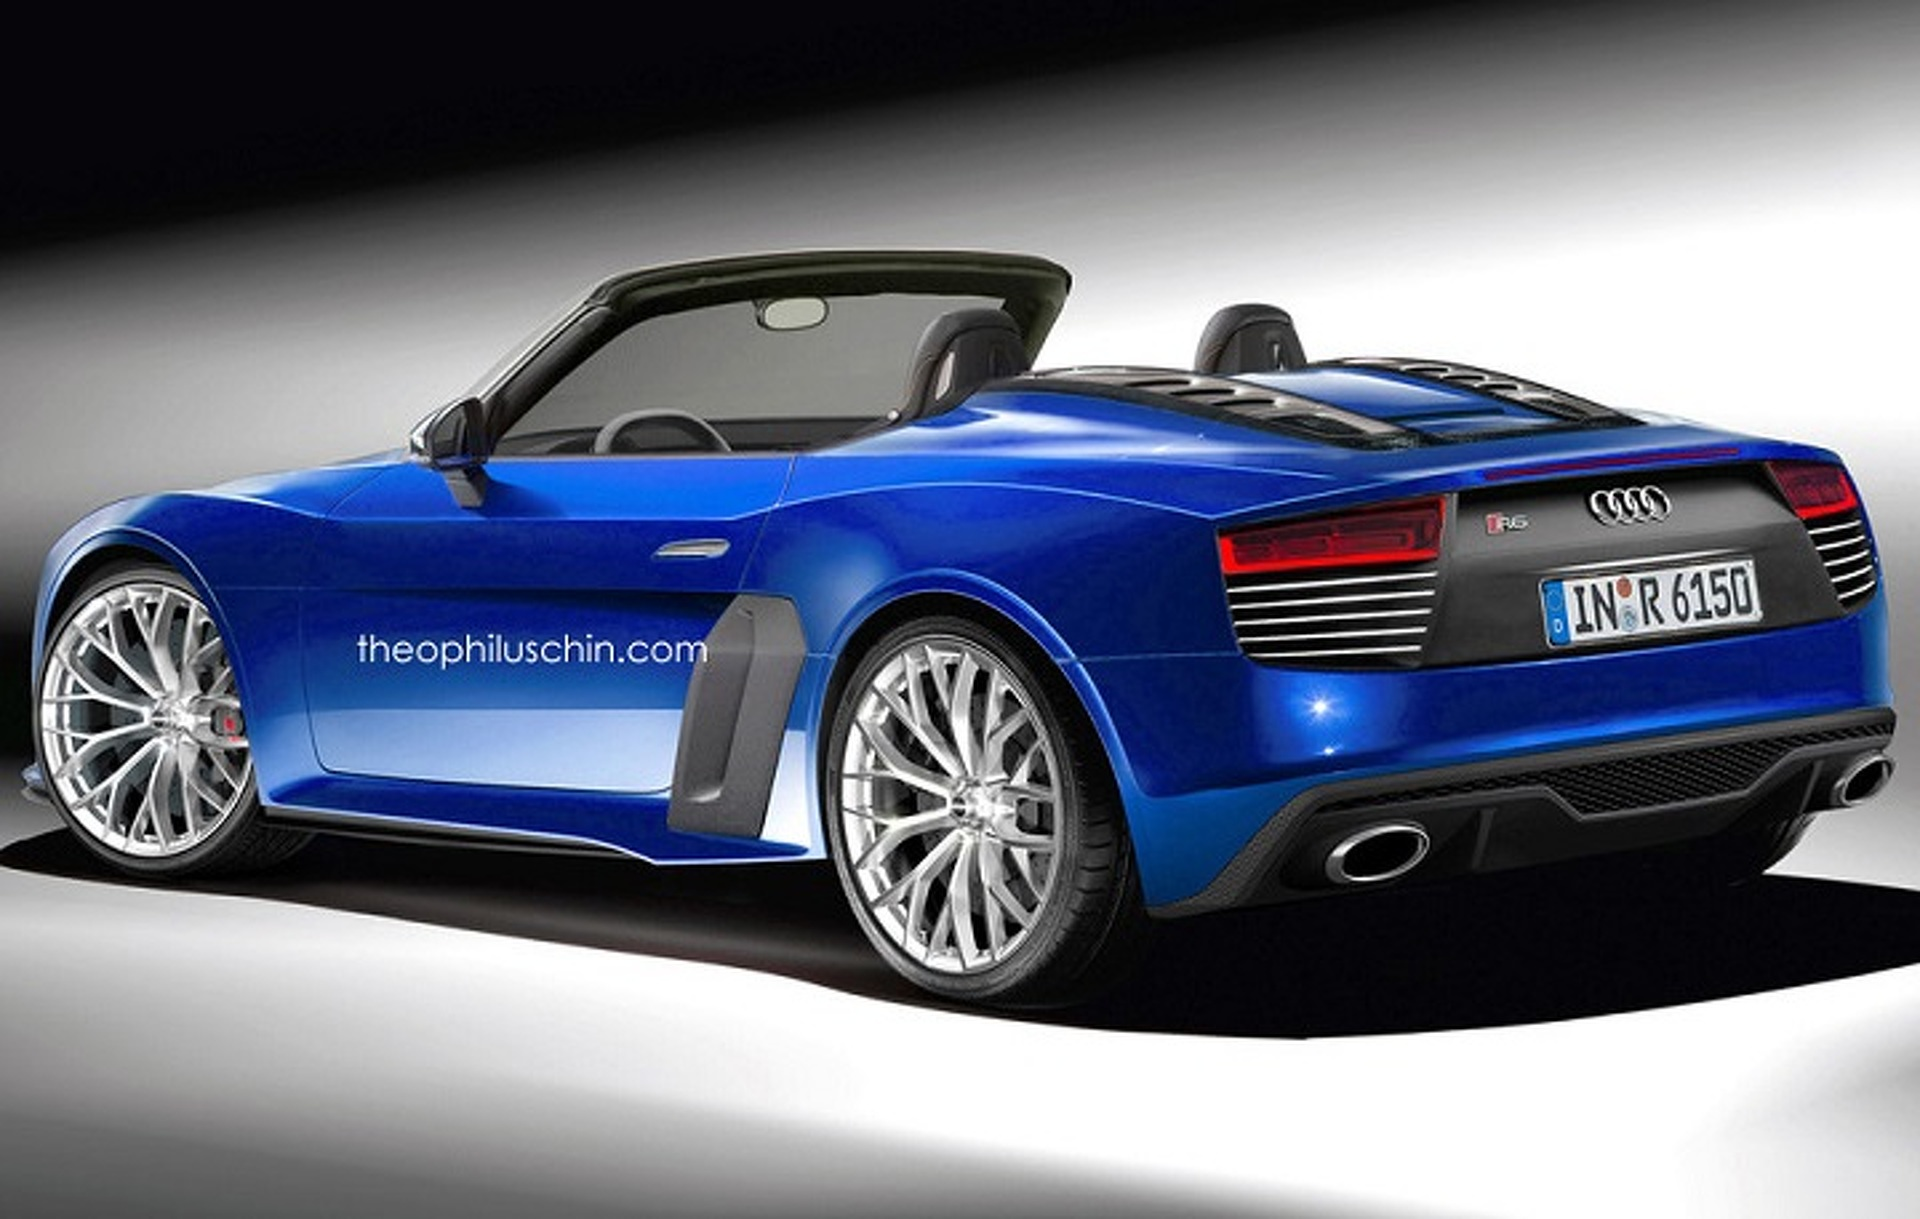 Audi R6 Concept Rendering Gives a Glimpse of the Future